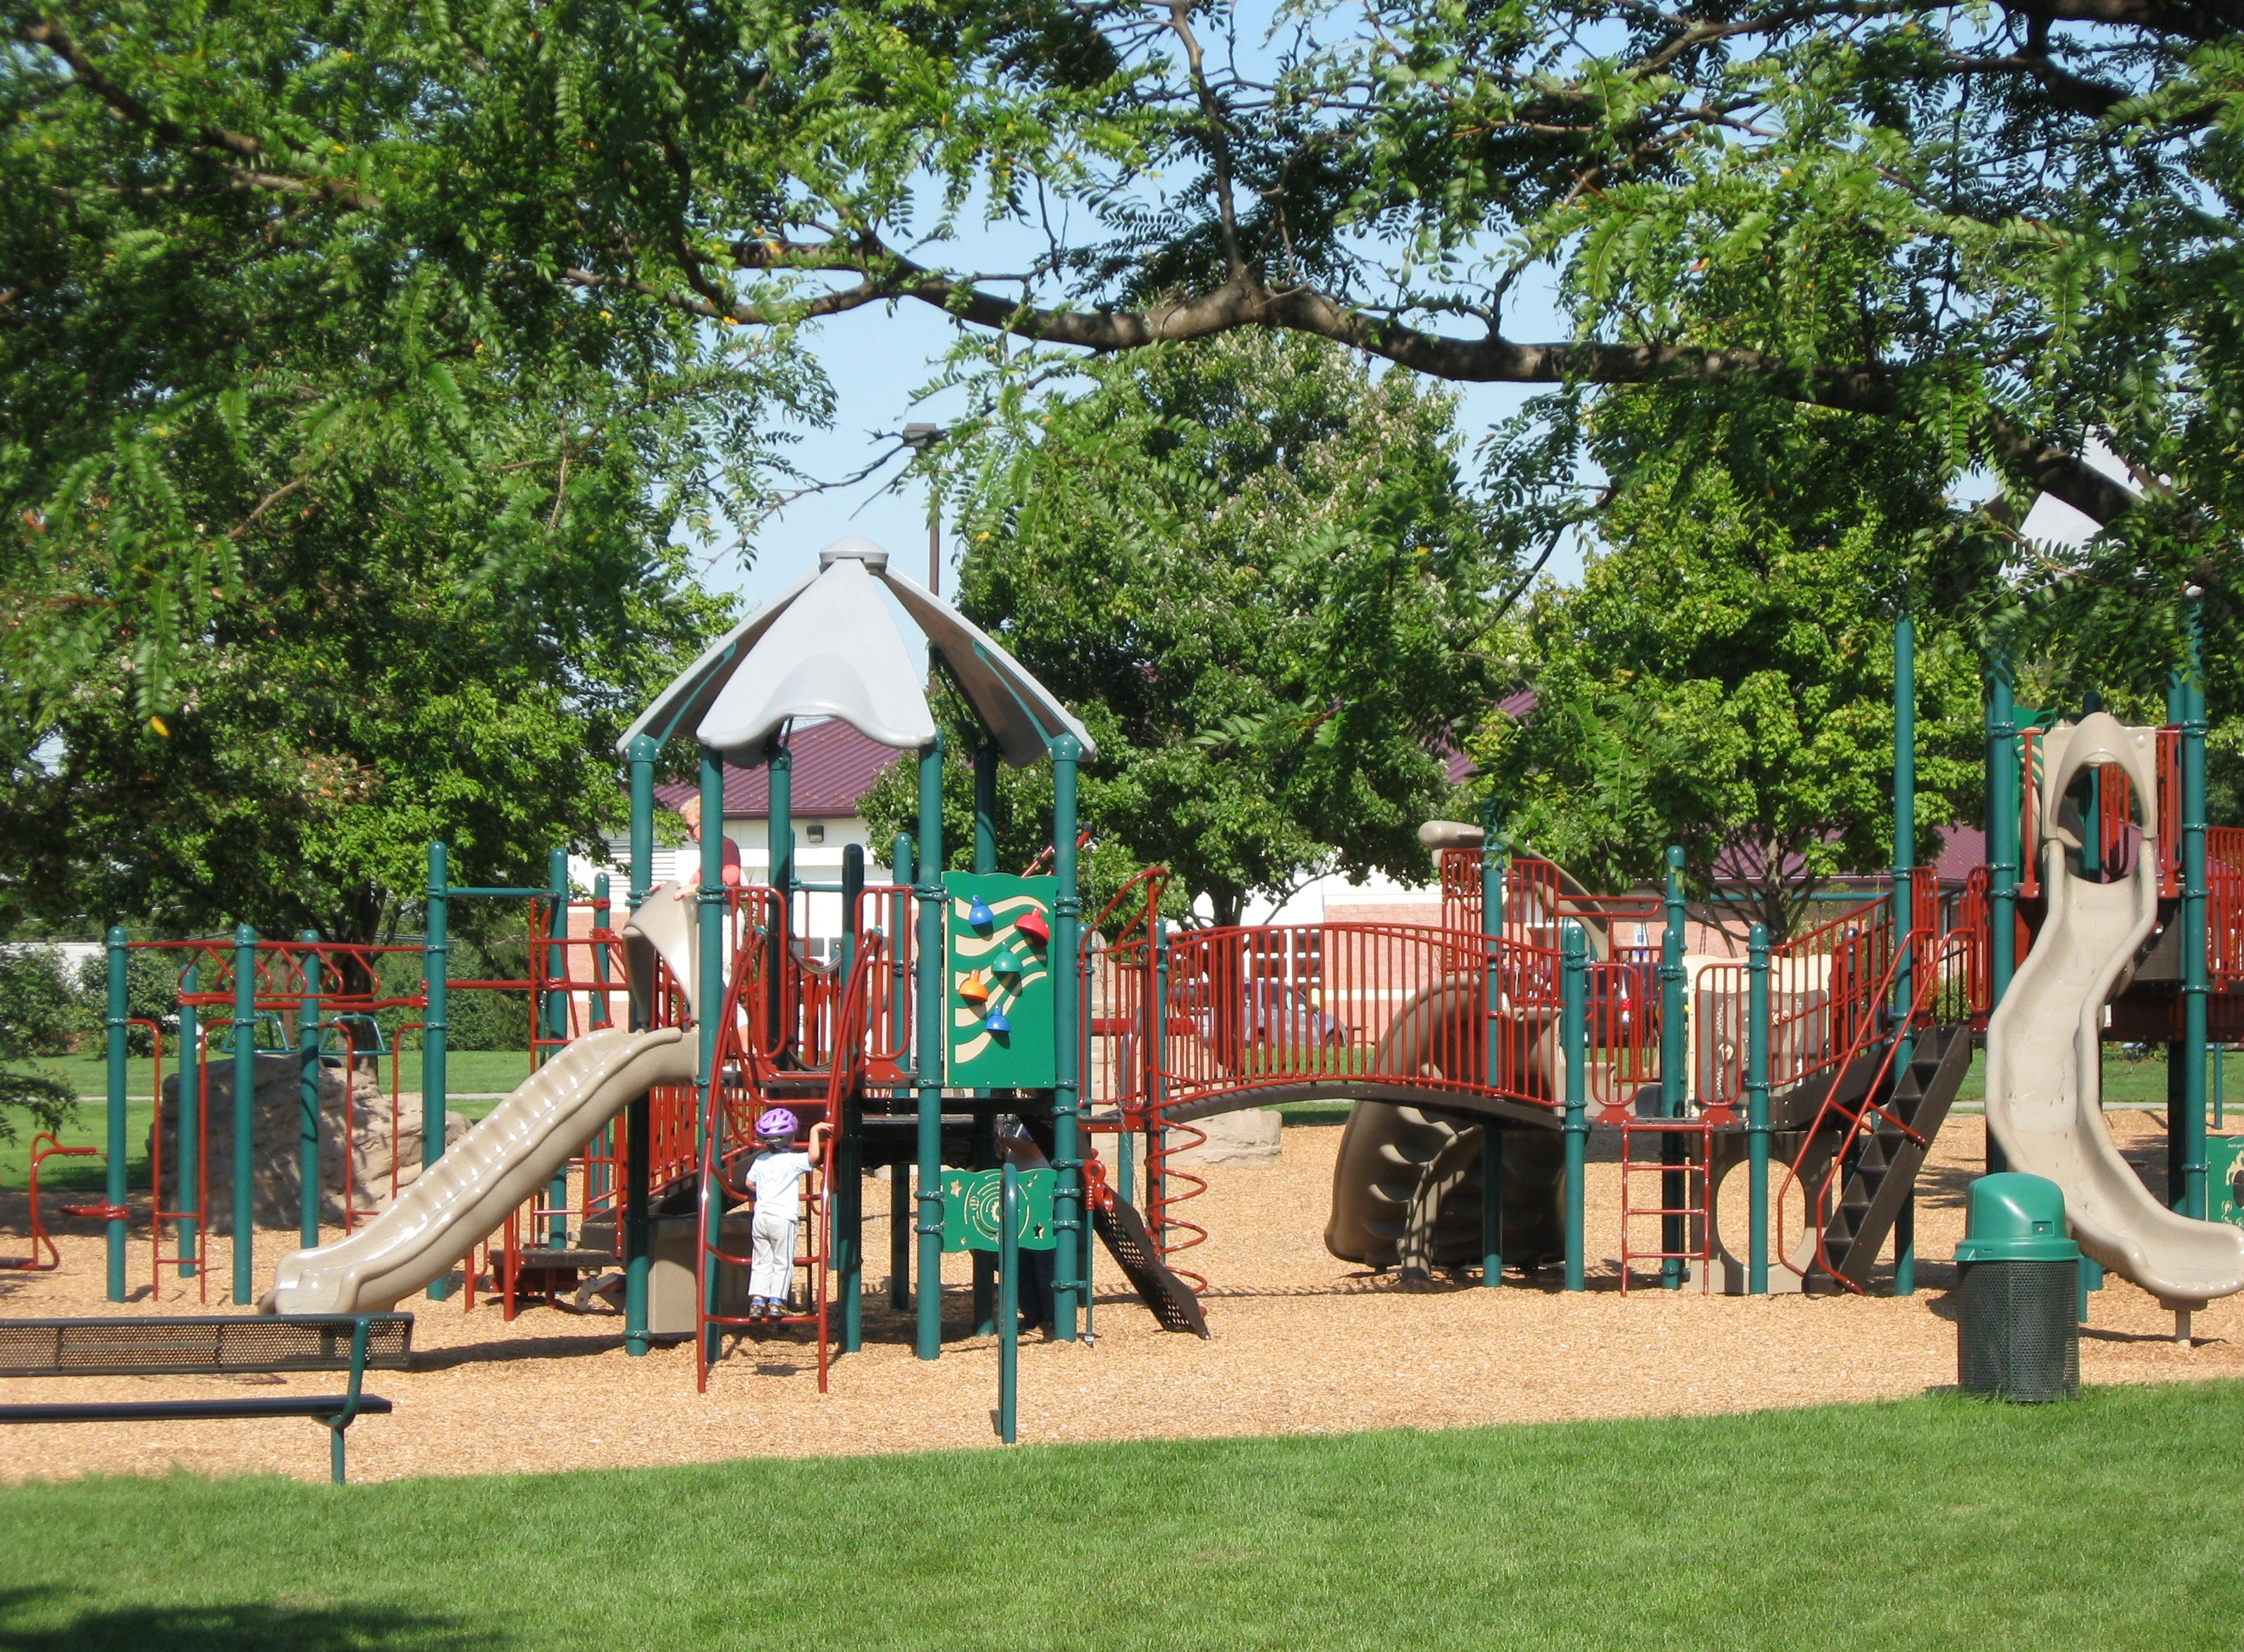 Playground for Childrean in a Park 184.1 Kb